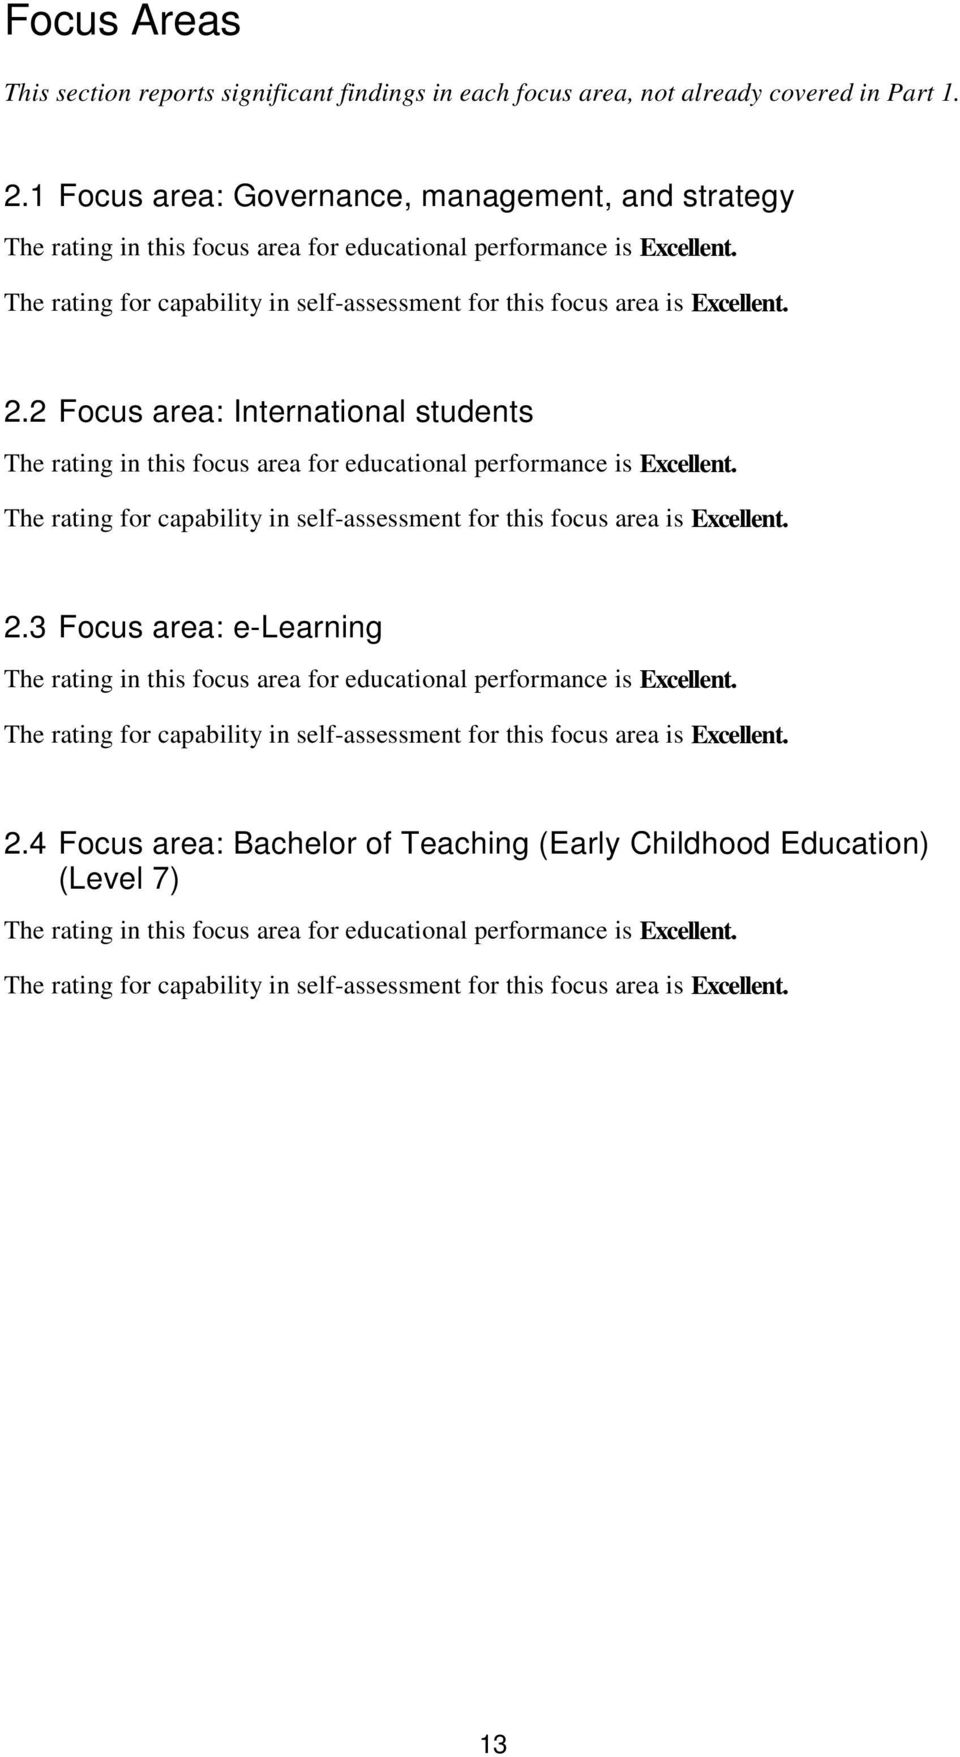 The rating for capability in self-assessment for this focus area is Excellent. 2.2 Focus area: International students The rating in this focus area for educational performance is Excellent.